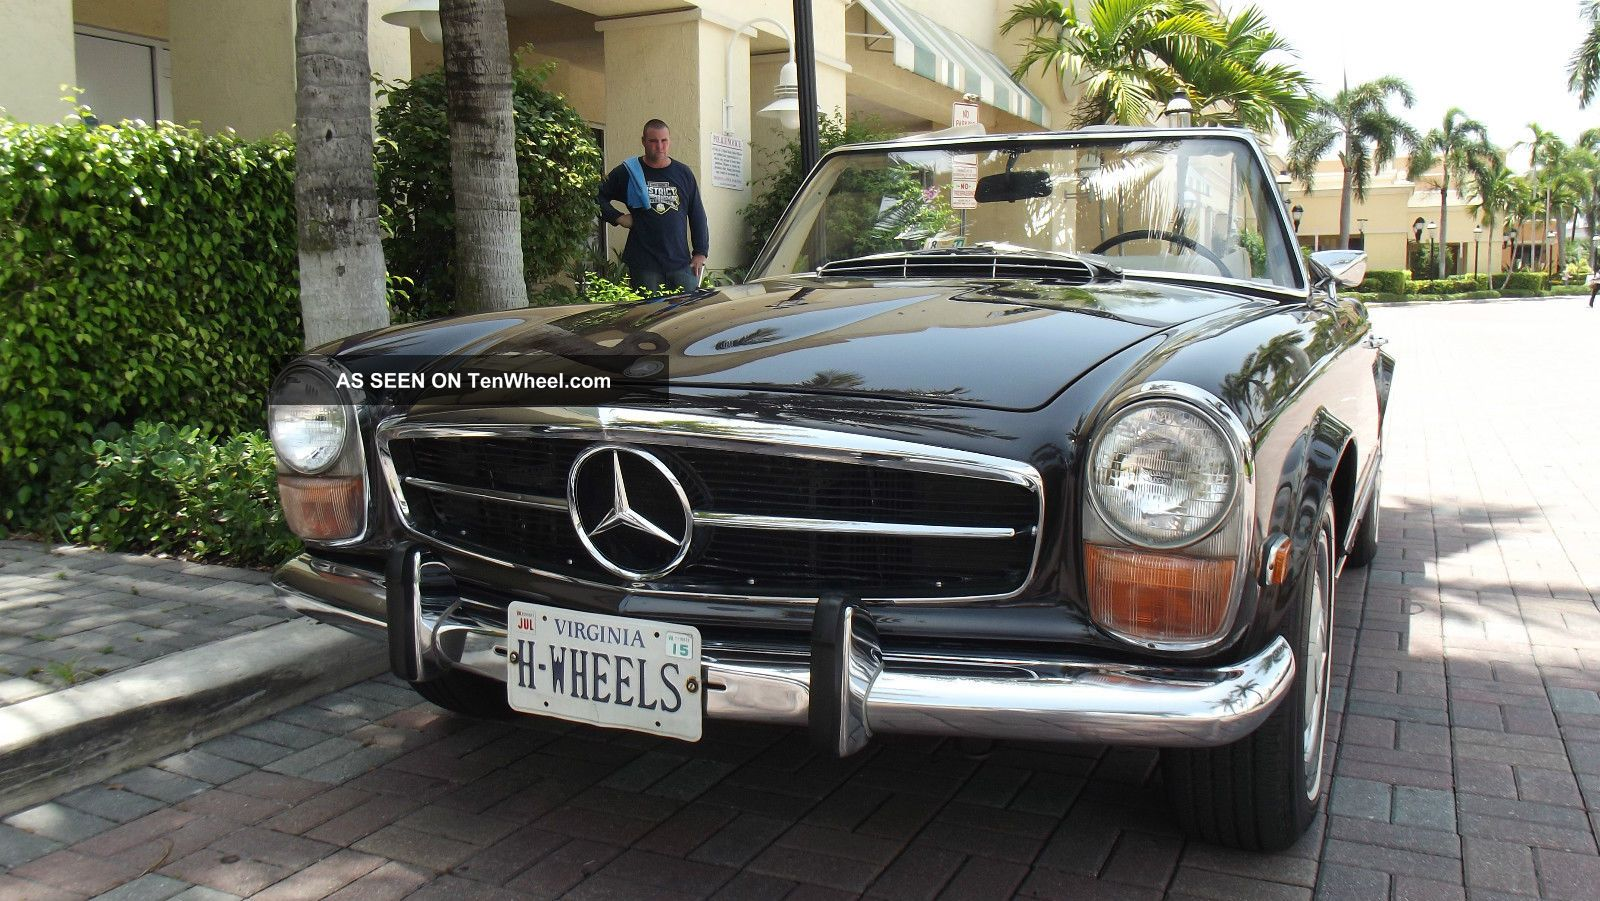 1970 mercedes 280 sl tabacco brown with creme interior two tops ac. Black Bedroom Furniture Sets. Home Design Ideas